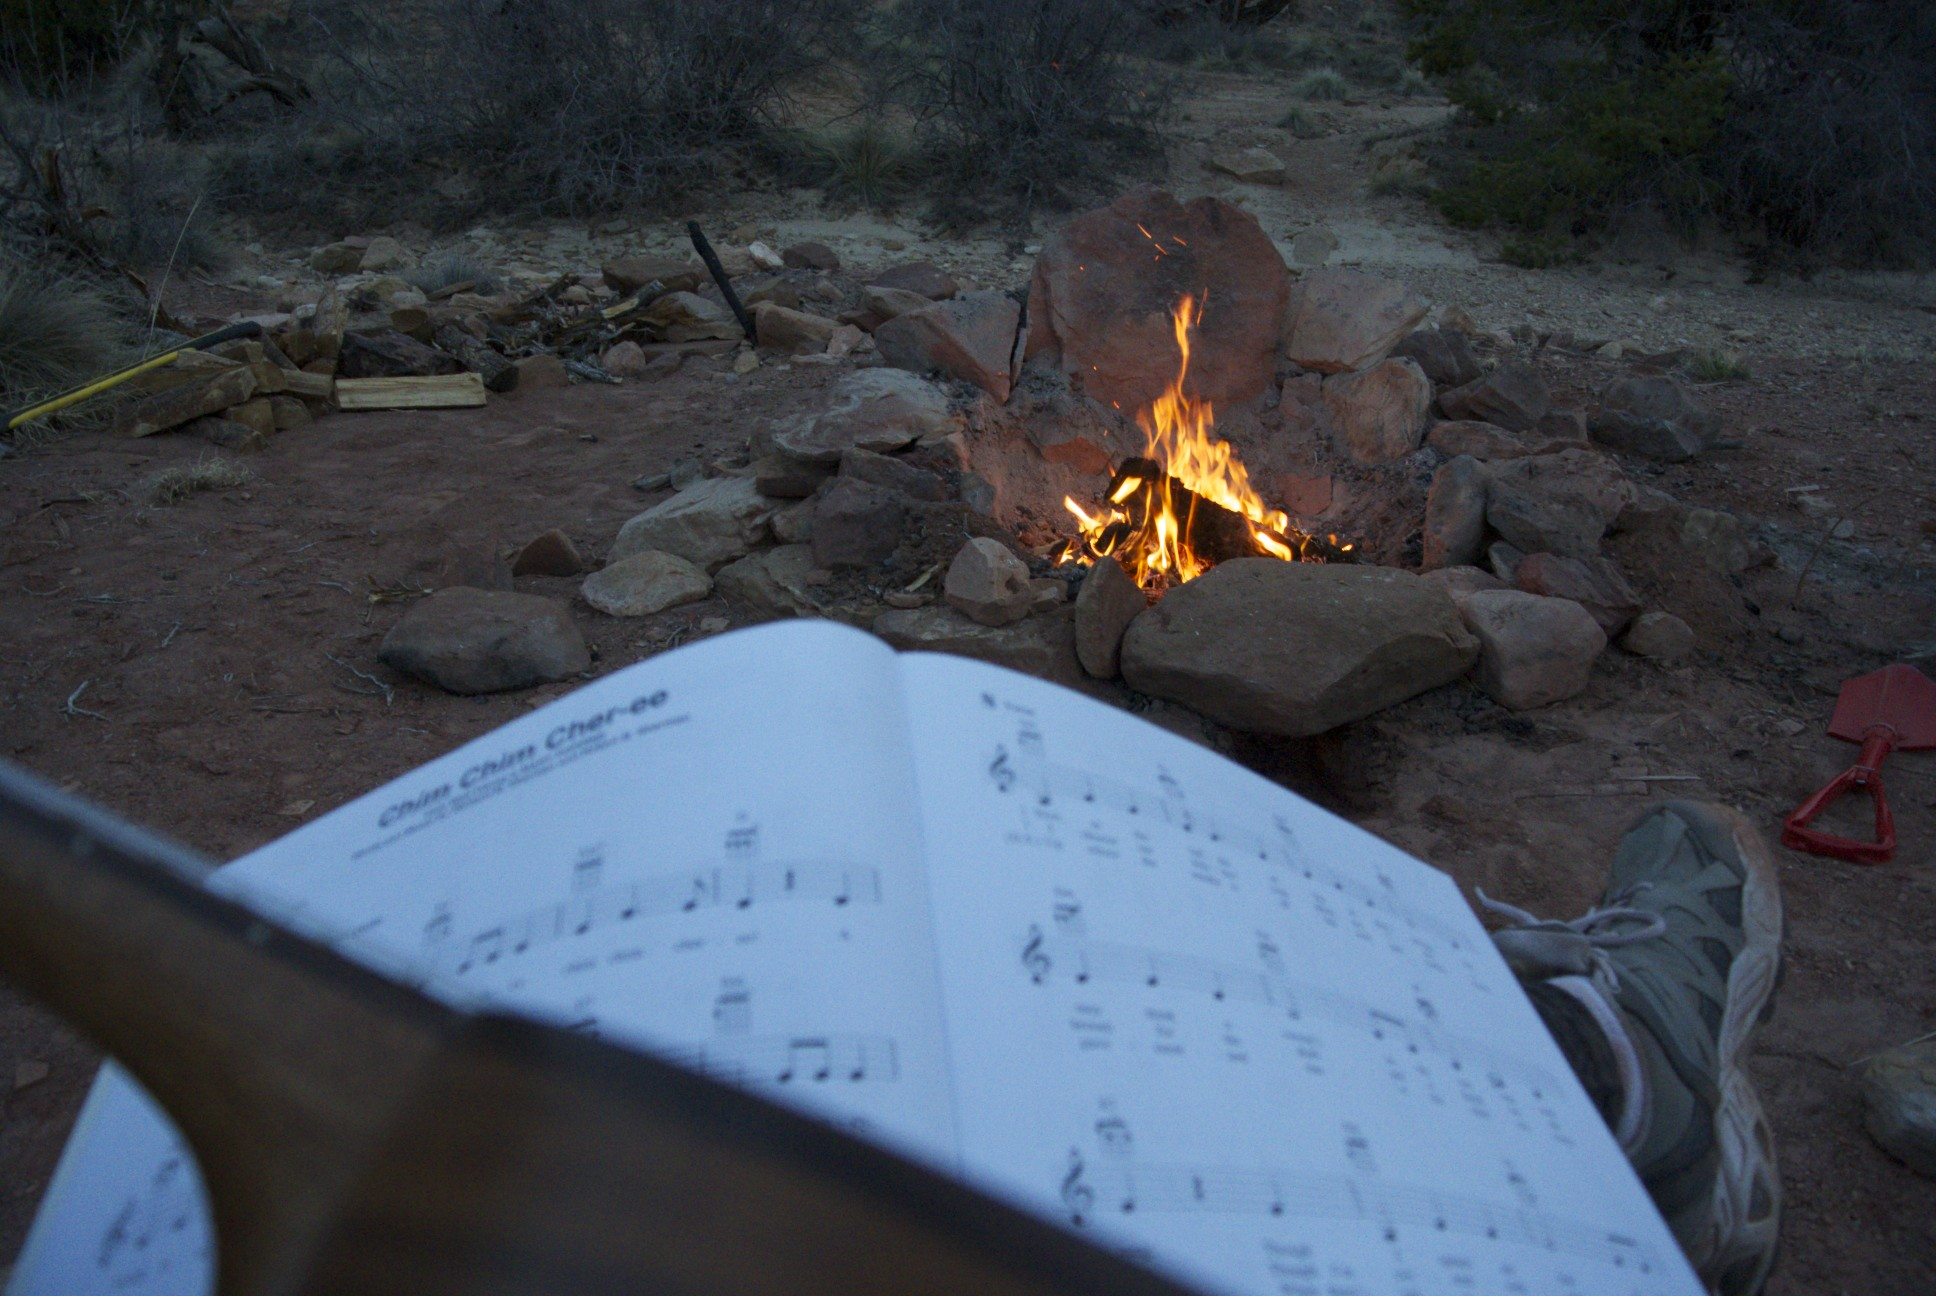 Playing Disney songs on the ukulele by the campfire